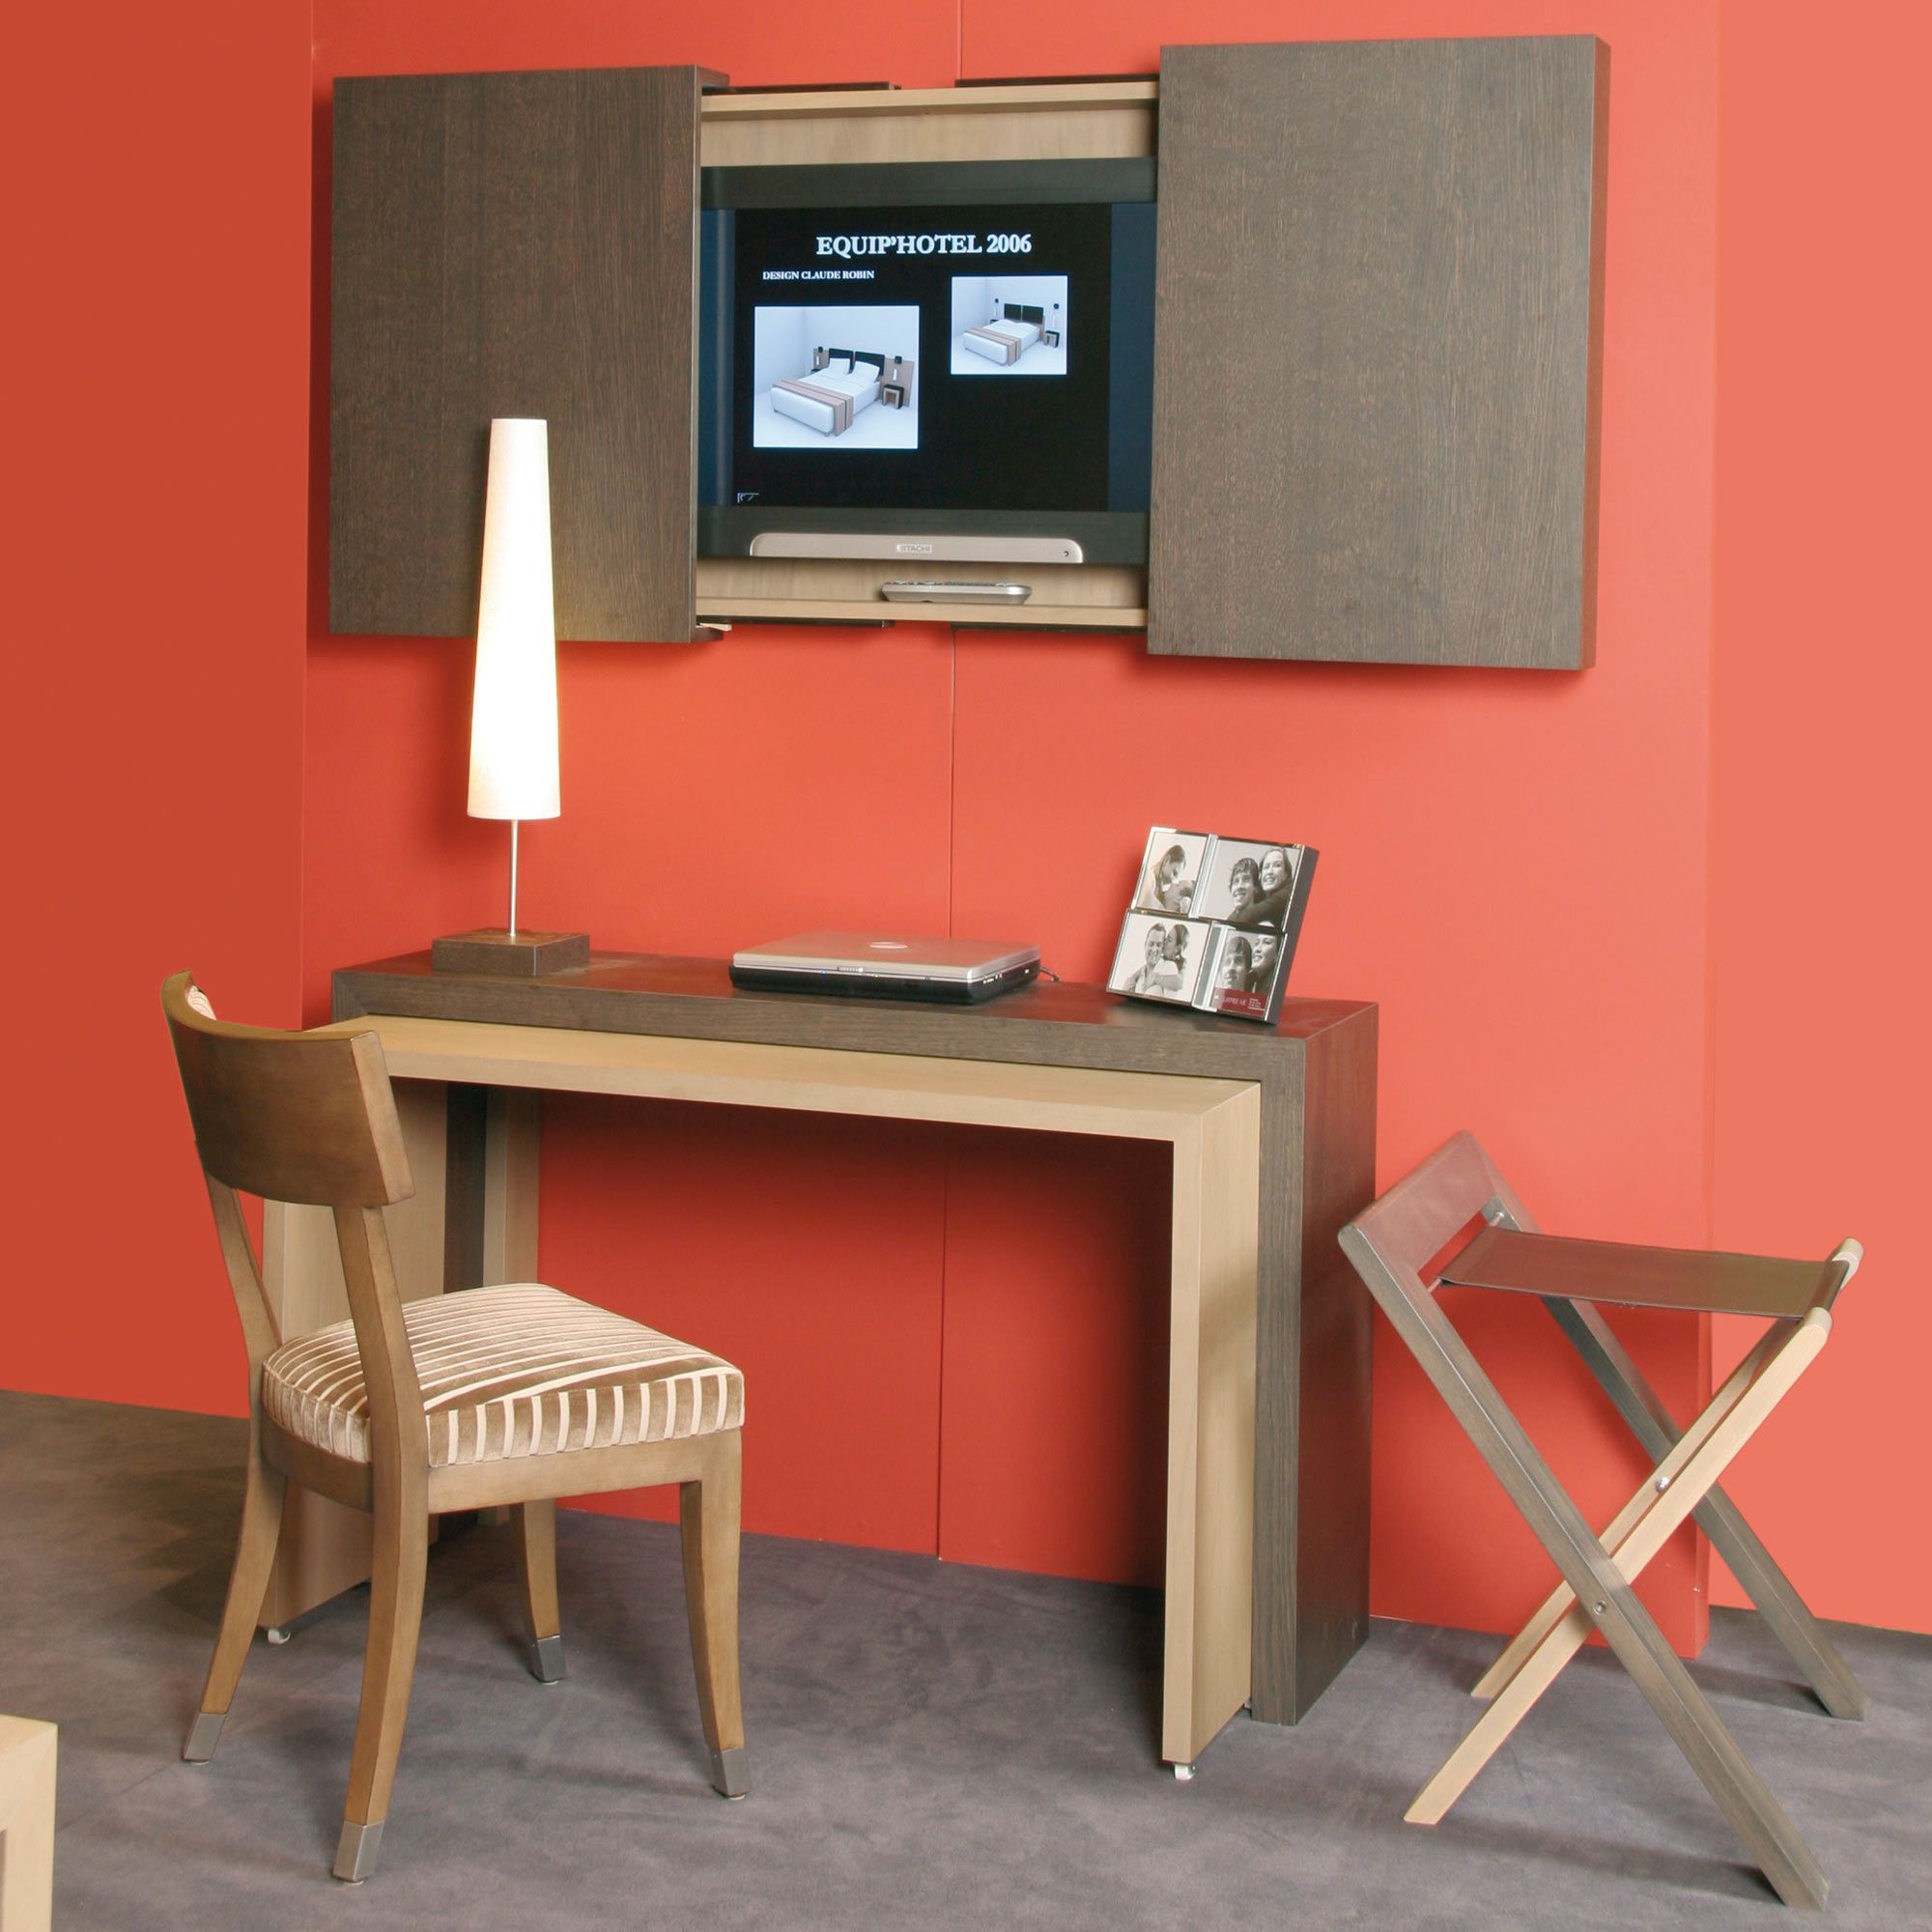 Meuble Tv Bureau Urbantrott Com # Creation Meuble Tv Bibliotheque Bureau